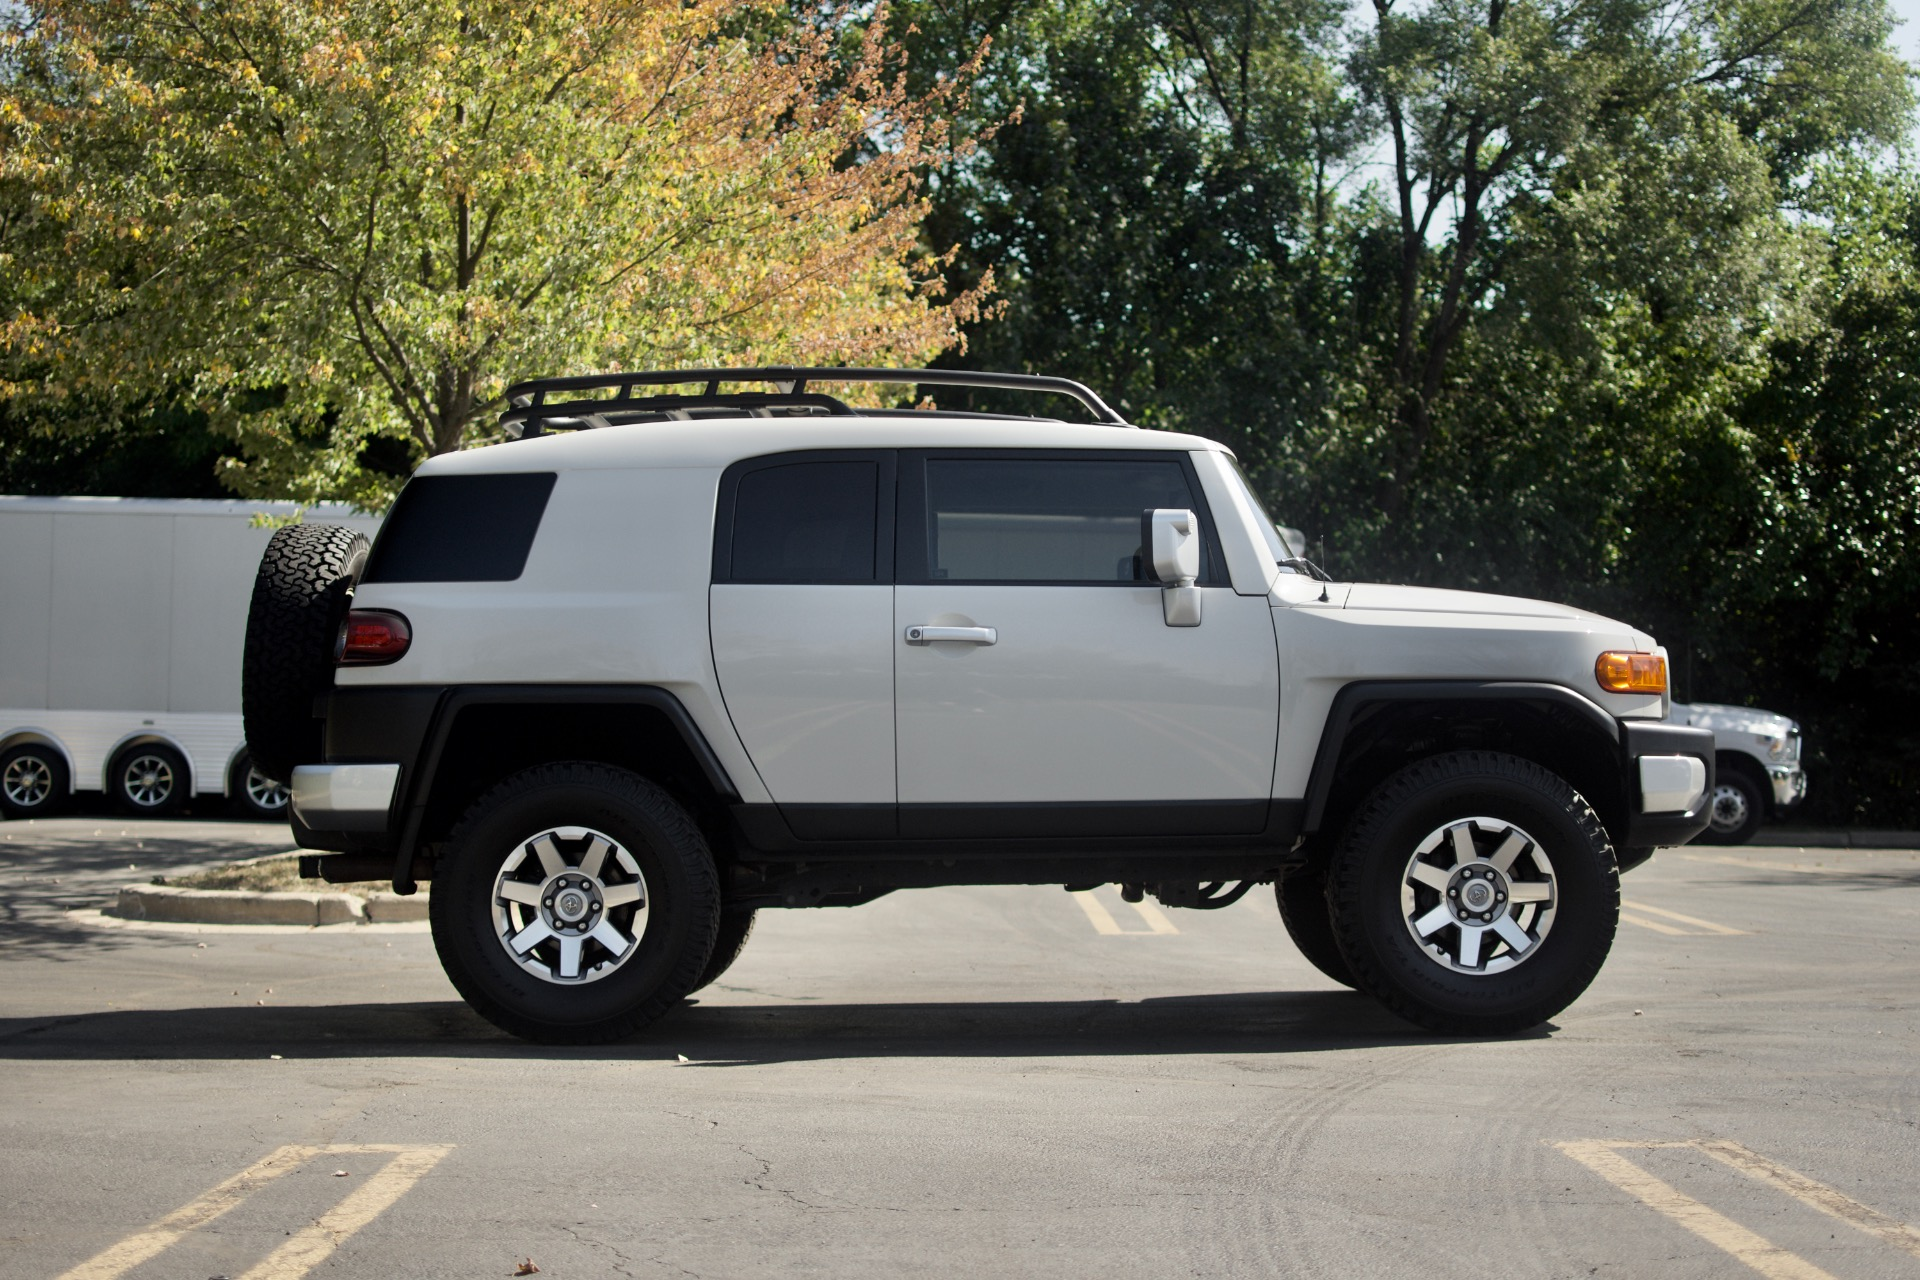 Used-2014-Toyota-FJ-Cruiser-SUV-6-Speed-Manual-Only-29k-Miles-Perfect-Condition-UPGRADES